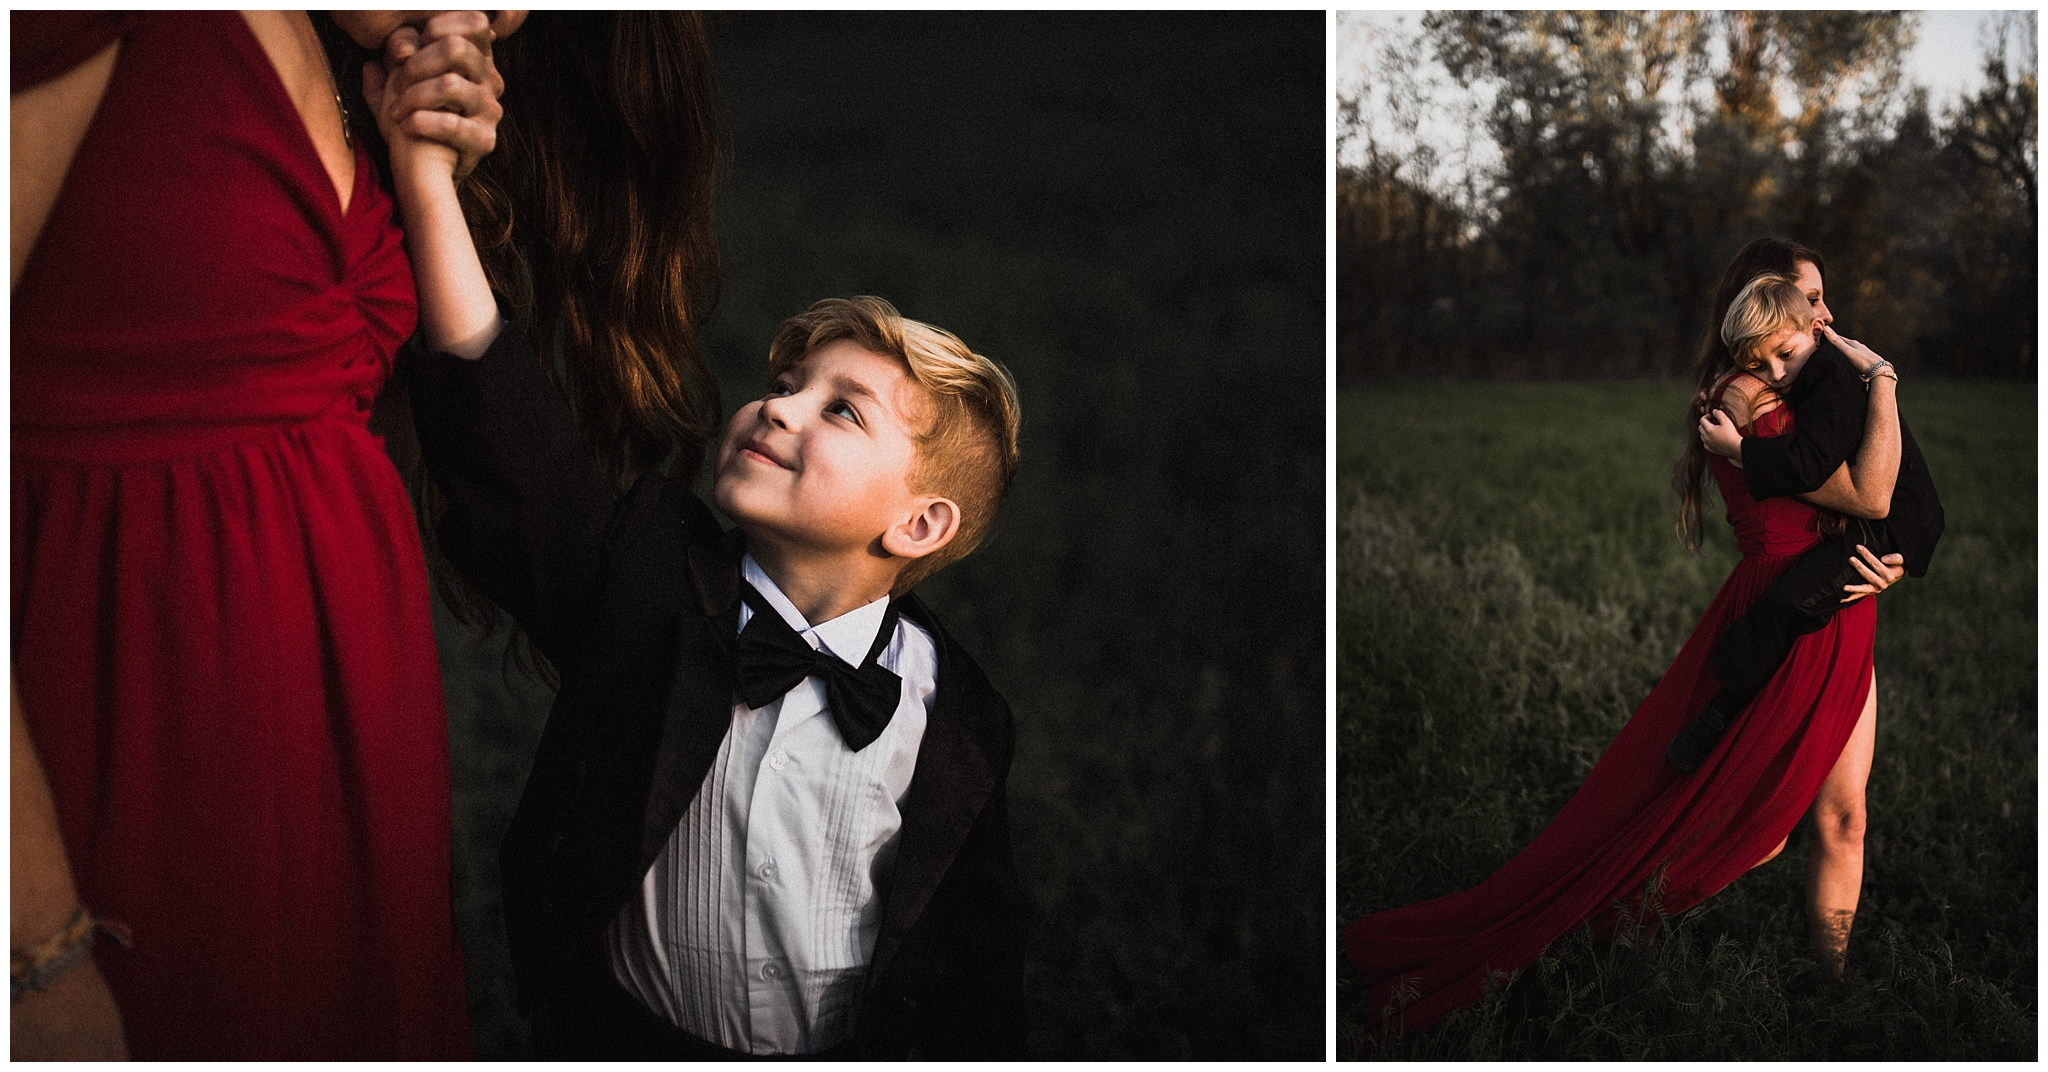 twyla jones photography | south florida family photographer | mother son session in a meadow-20160420-_TDJ3785.jpg